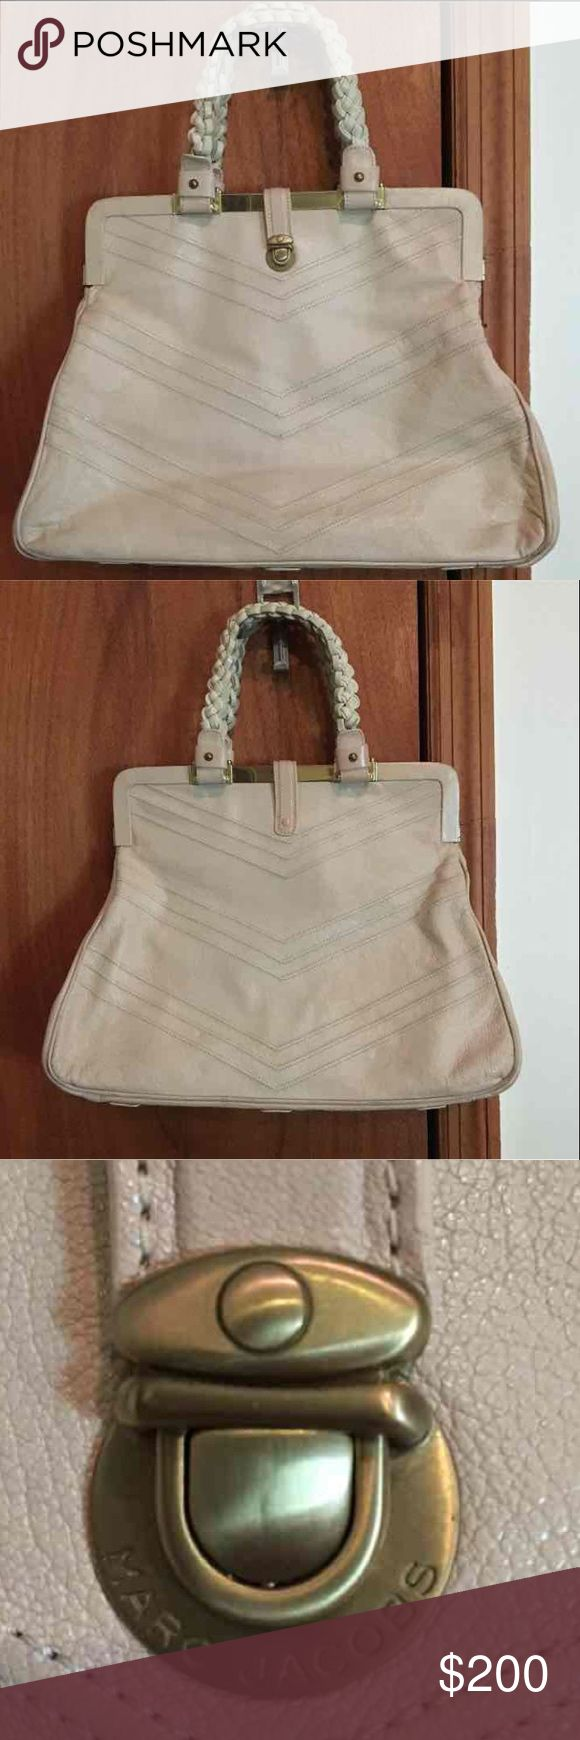 Authentic Marc Jacobs Chevron Frame Satchel -Ivory Authentic. Ivory color Leather with burgundy suede lining. Gold hardware. Braided leather handles. Zip pocket inside. Used but well cared for. Bottom corners are slightly scraped. See photo. Marc Jacobs Bags Satchels